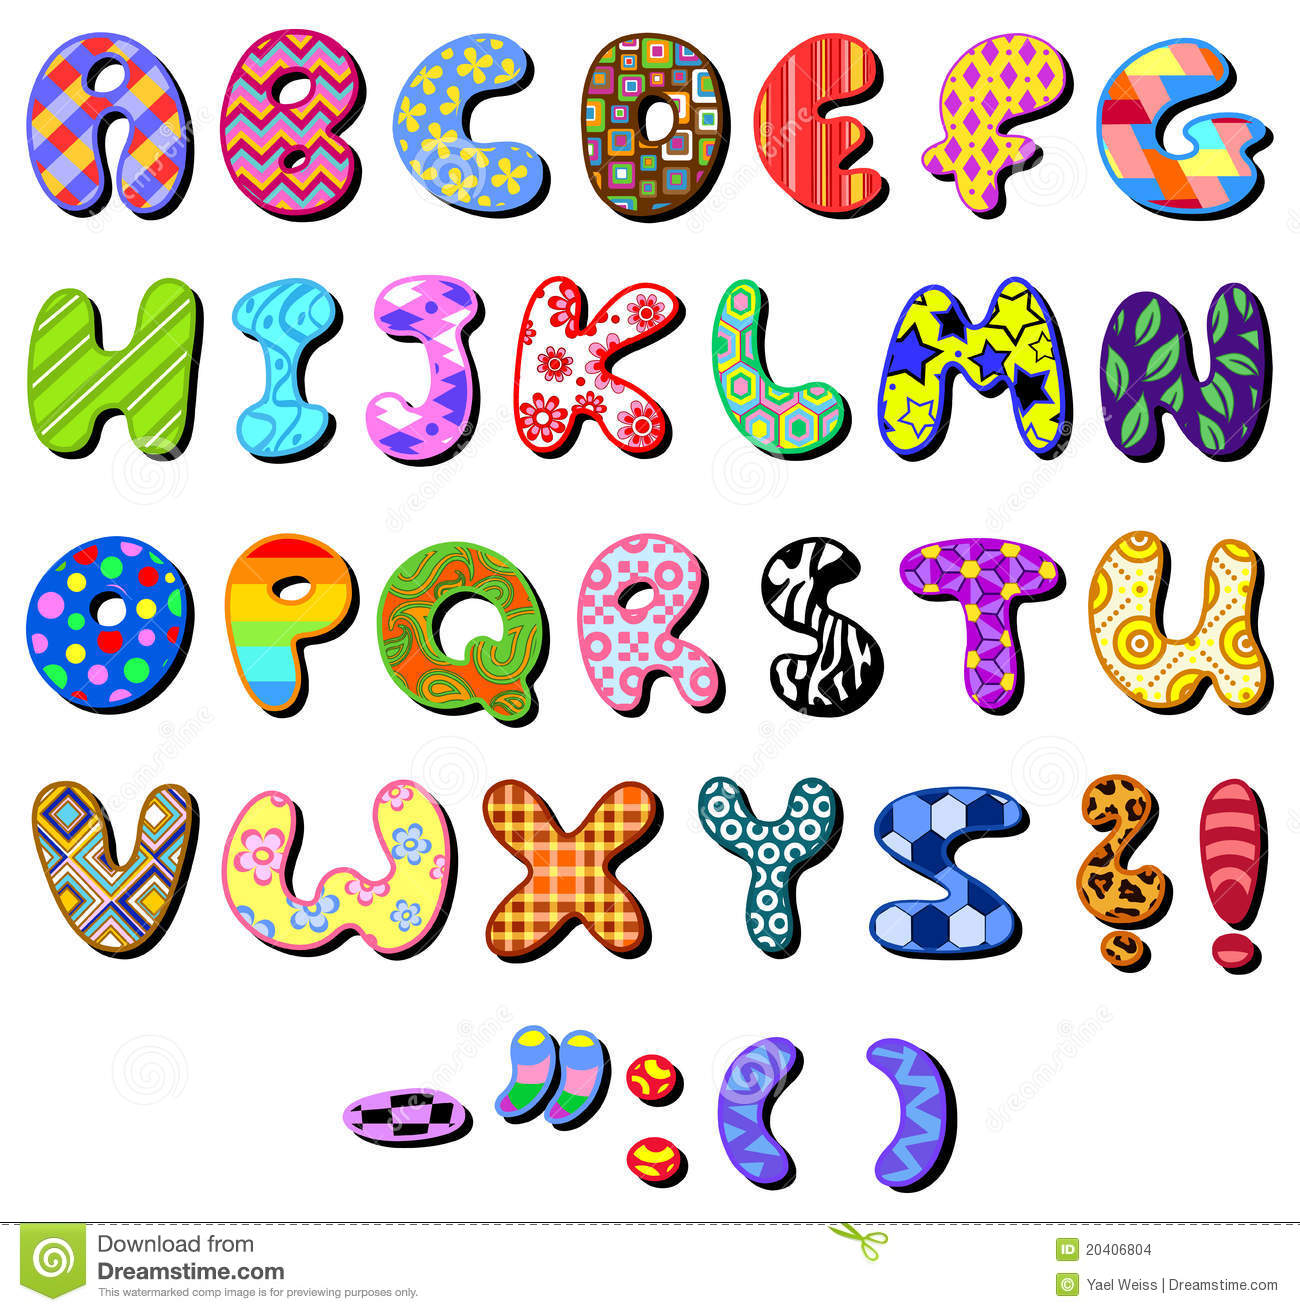 https://thumbs.dreamstime.com/z/patterned-alphabet-20406804.jpg